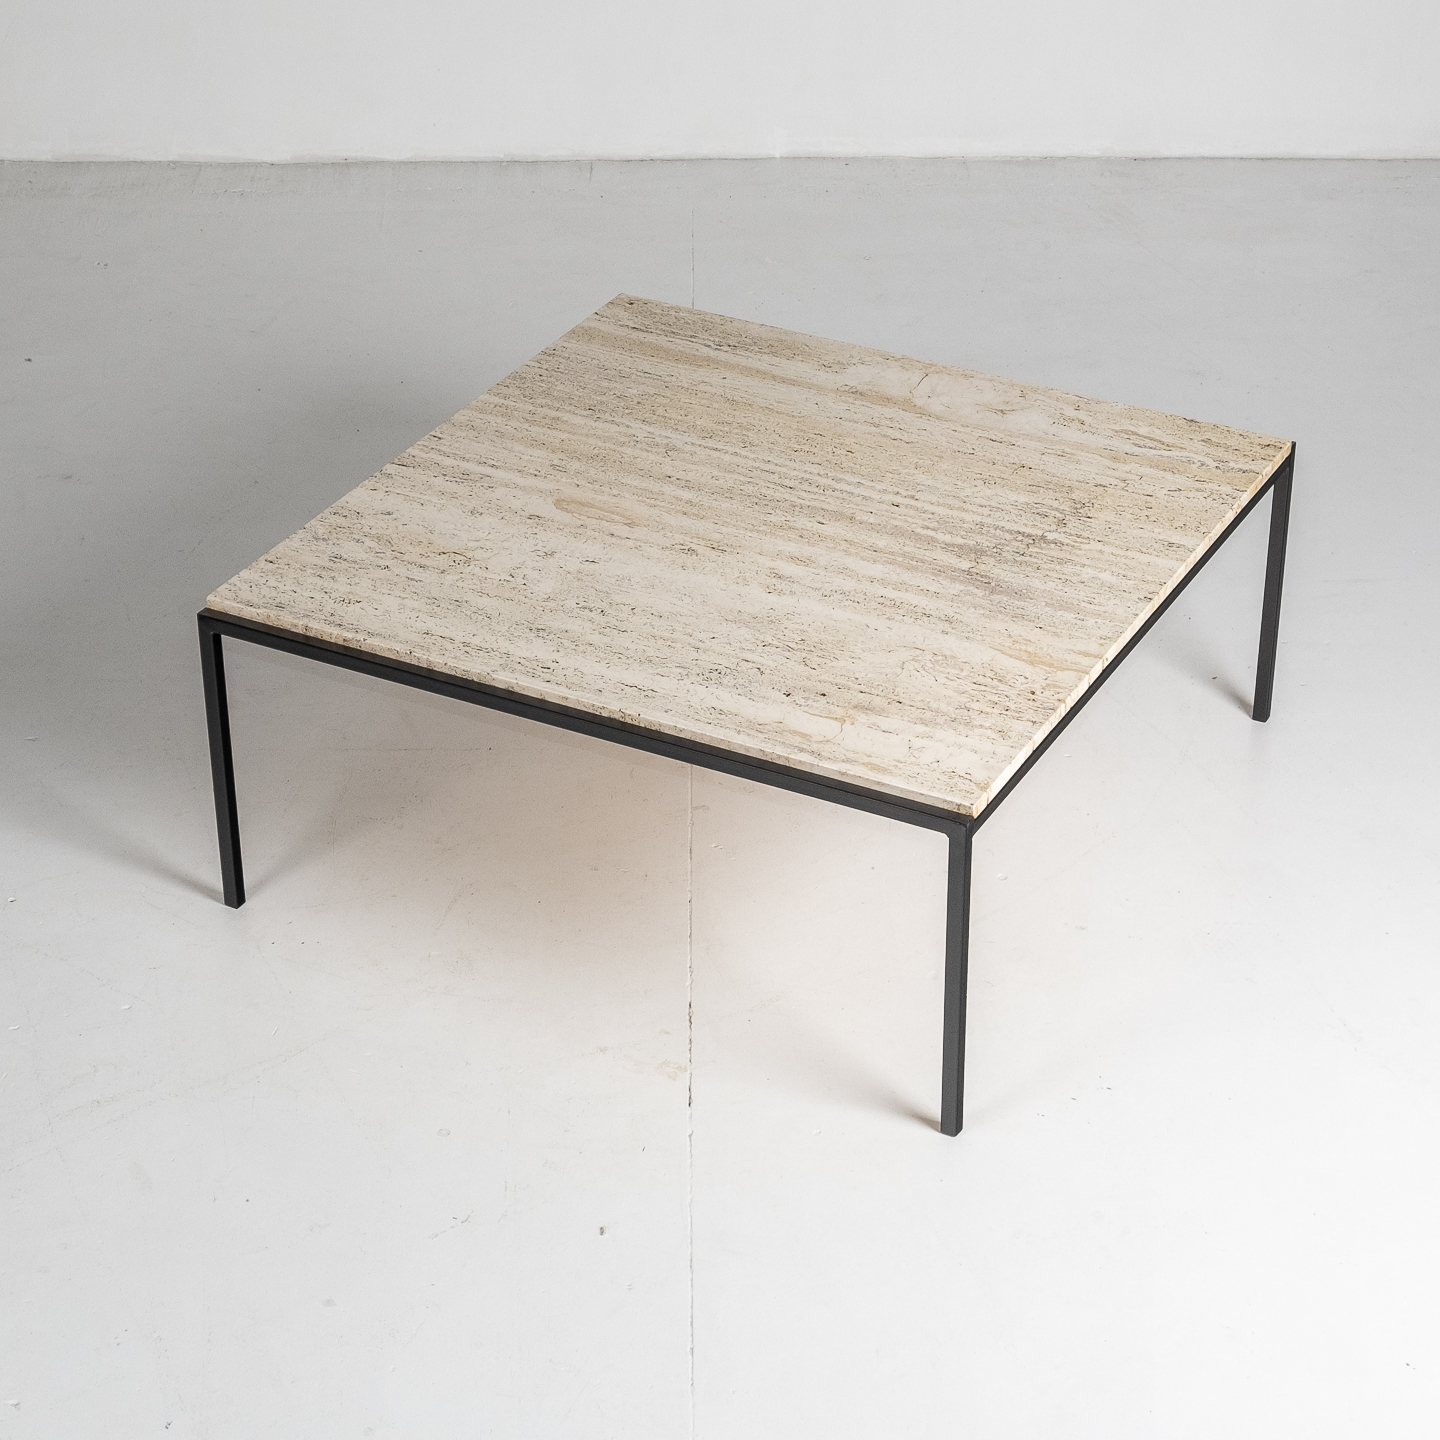 Square Travertine Coffee Table, 1950s, The Netherlands 47